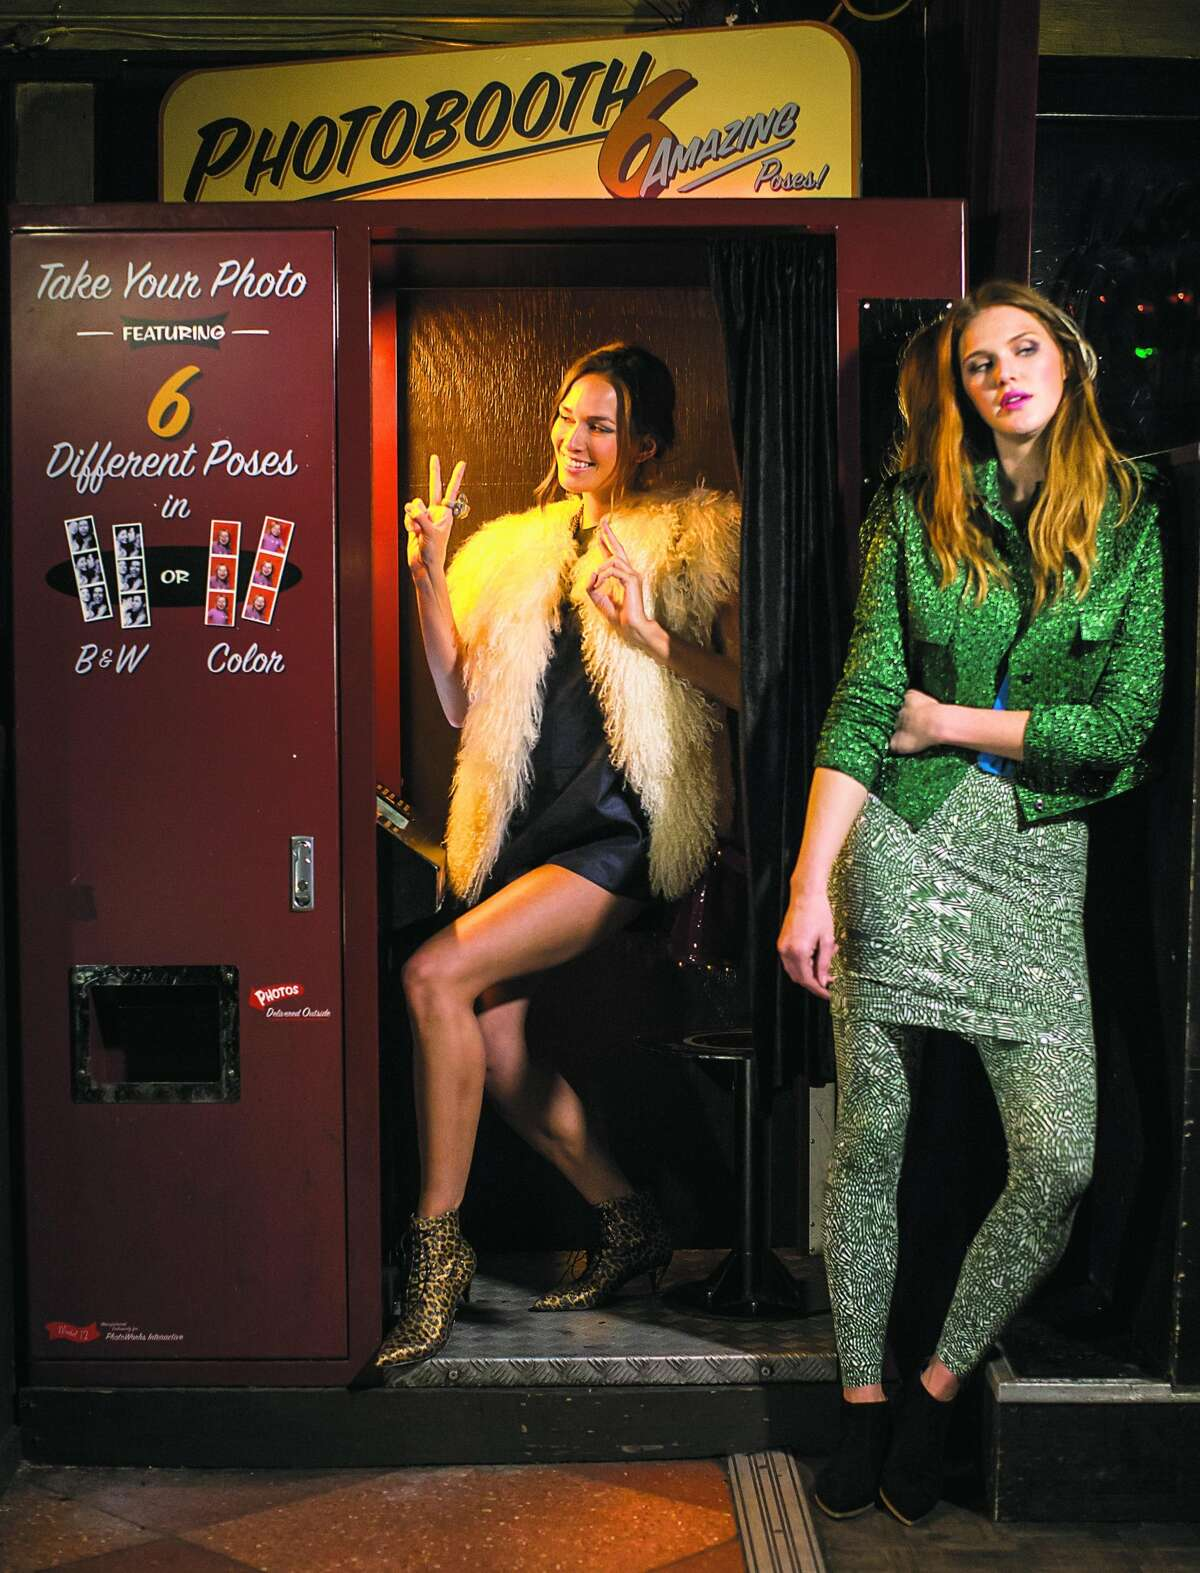 First stop, Elbo Room: Mei-Ling (left) is photo booth-ready in a Cameo romper, $152, from BellJar, 3187 16th St., S.F.; vintage goat vest, $300, Ver Unica; Saint Laurent leopard boots, $895, Barneys New York; bird necklace, $59, Zara; stone ring, $150, Azalea; velvet handbag, Opening Ceremony, stylist's own. Adair's in a Lanvin jacket, $3,540, Saks Fifth Avenue; vintage blue velvet top, $28, from Pretty Penny, 1201-A Guerrero St., S.F.; Gravel & Gold Goods leggings, $88, skirt, $69, Gravel & Gold, 3266 21st St., S.F.; Miu Miu boots, $595, Barneys.